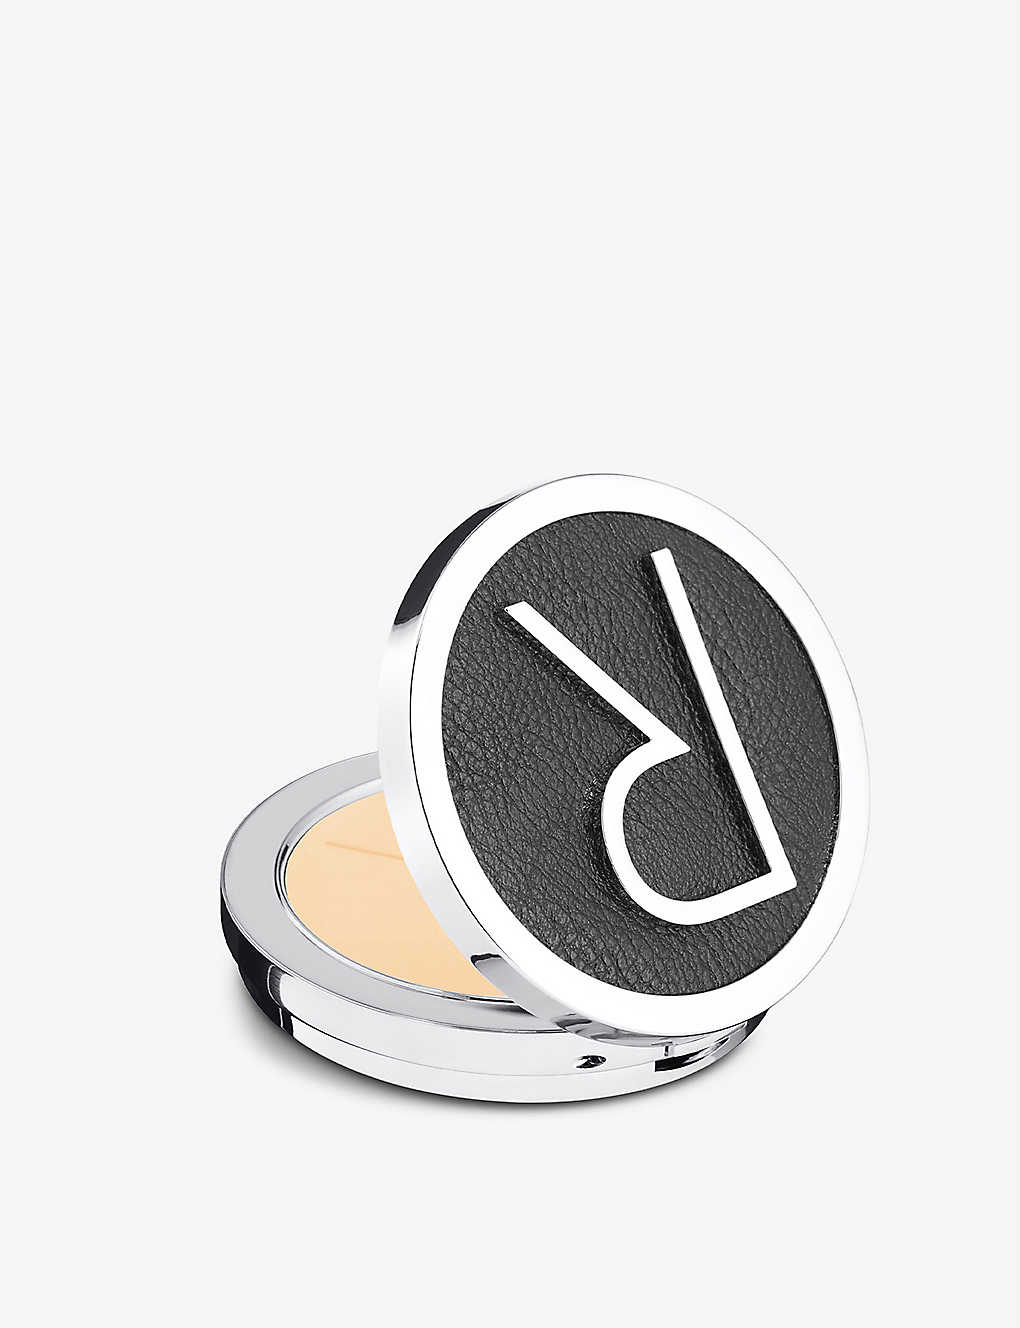 RODIAL: Instaglam Deluxe Banana powder 10.5g